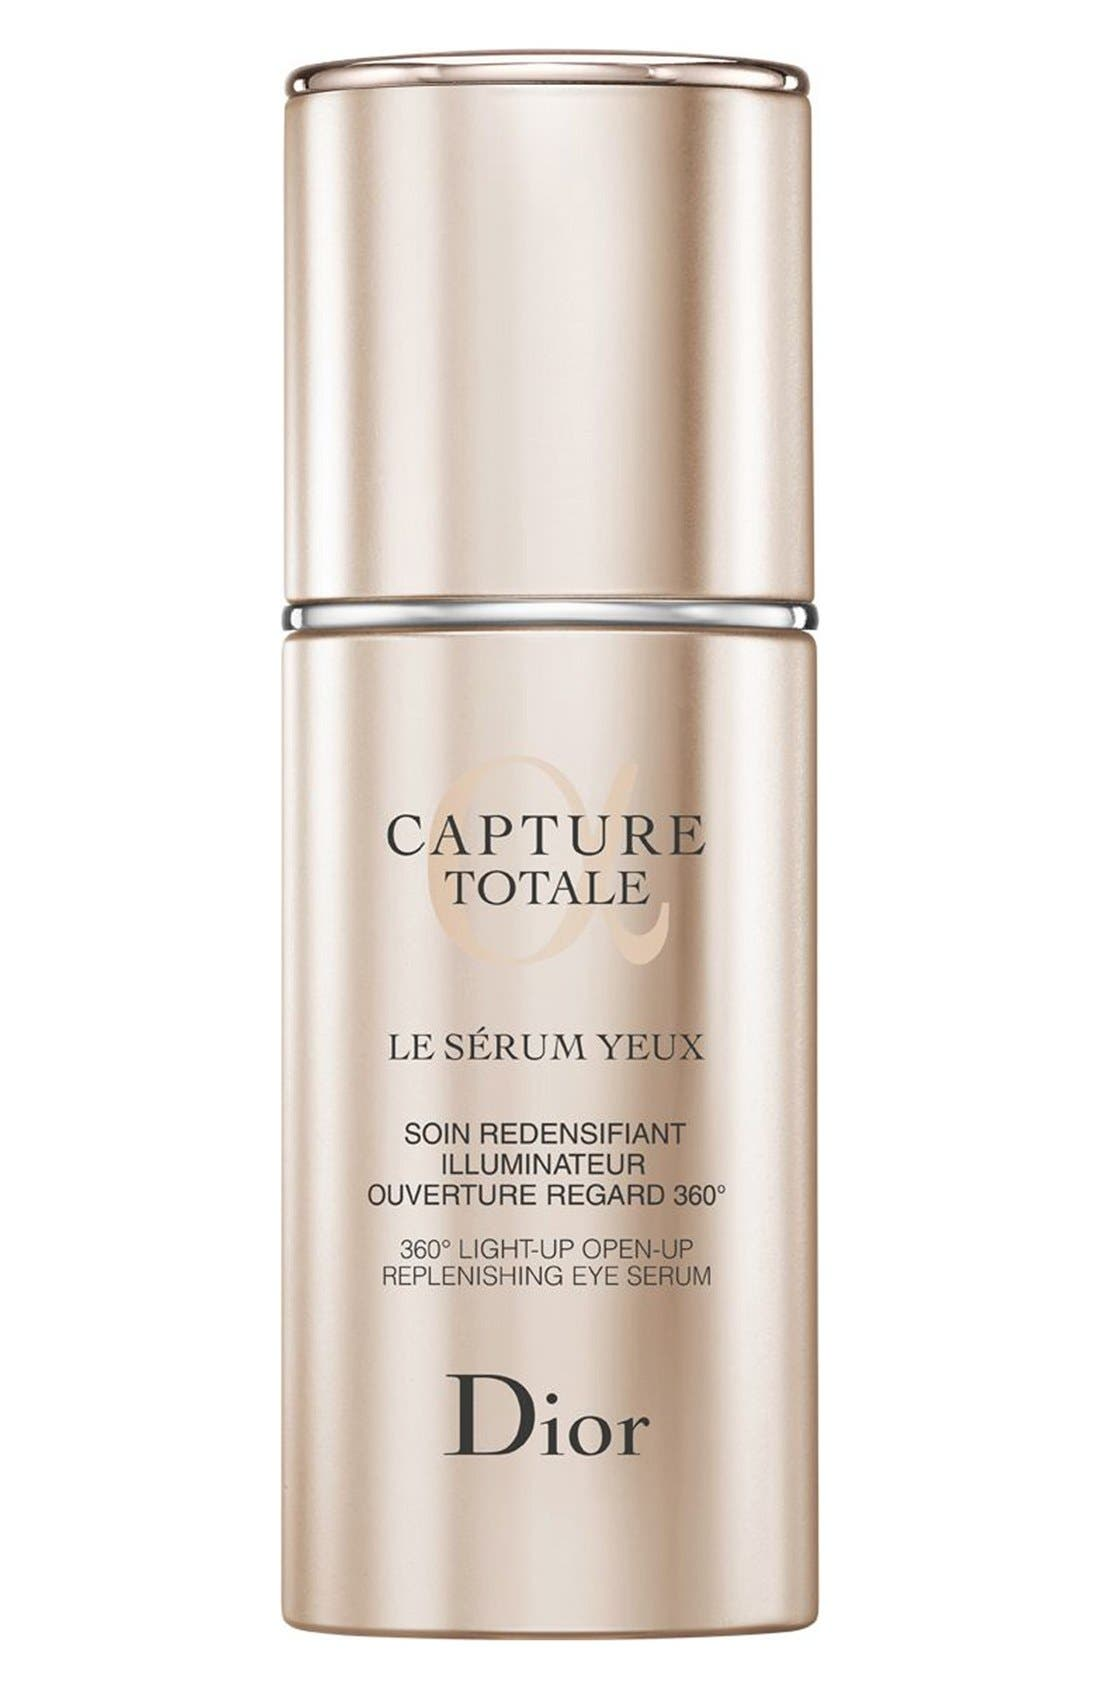 Dior 'Capture Totale' 360° Light-Up Open-Up Replenishing Eye serum